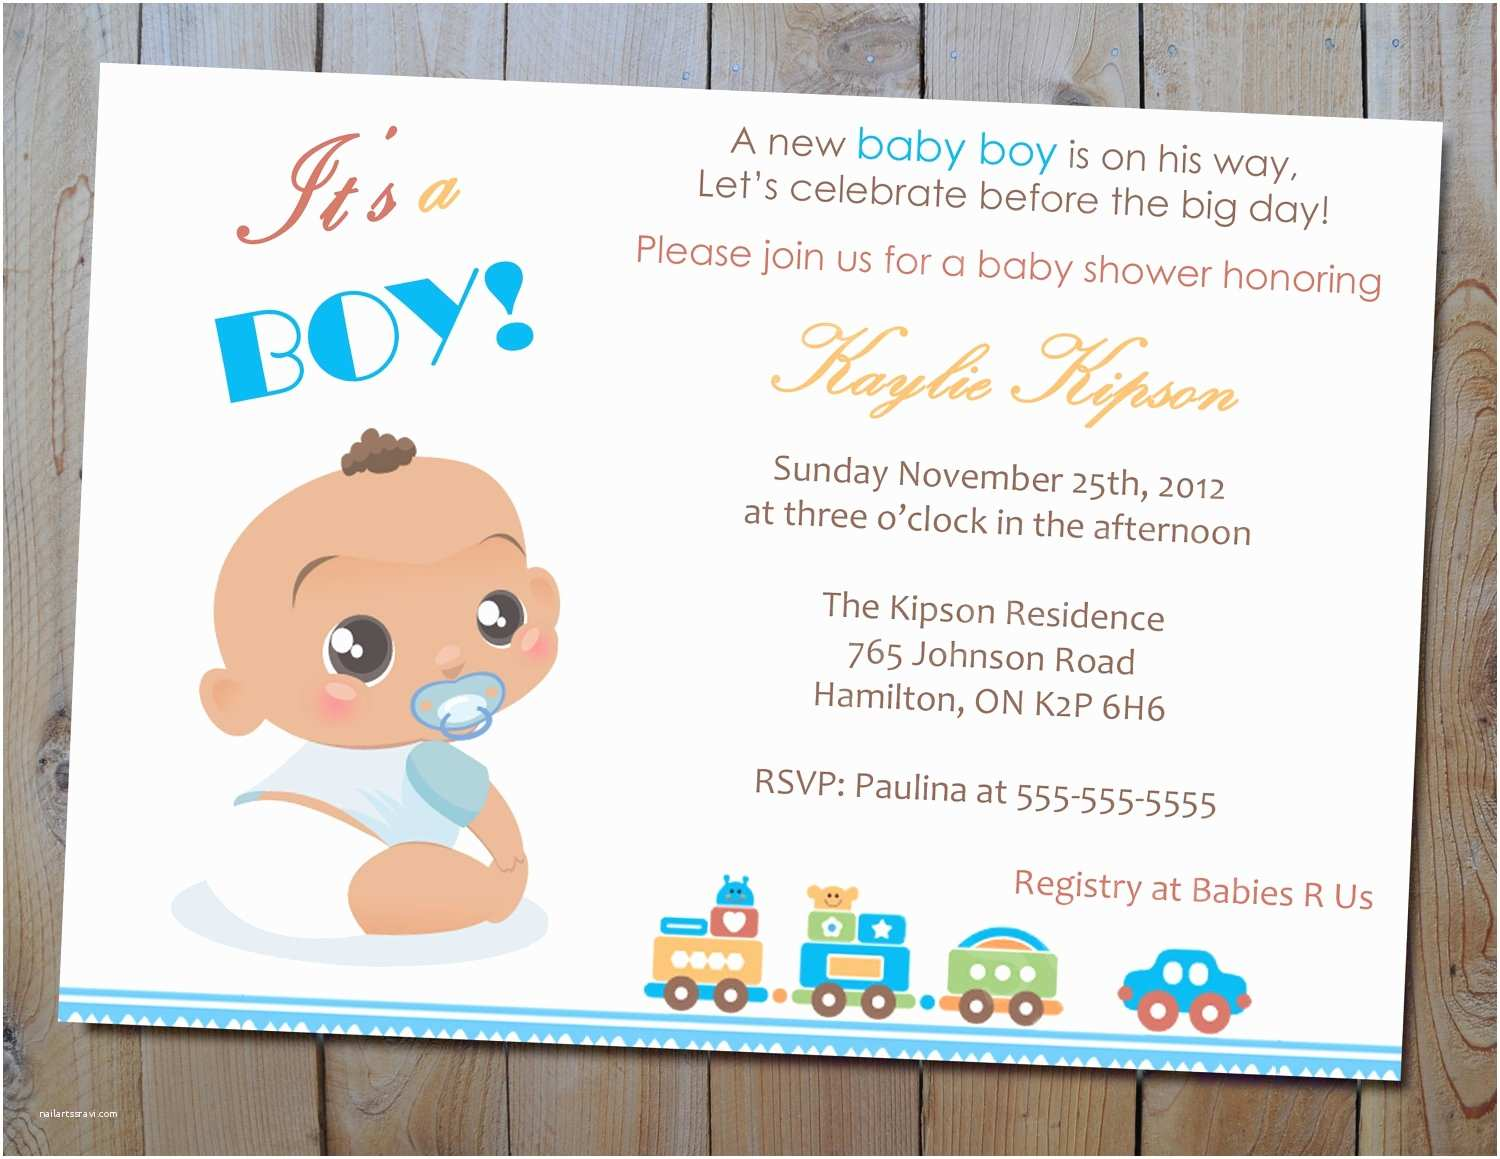 Baby Shower Invitations for Boy Invitations for Baby Shower Boy